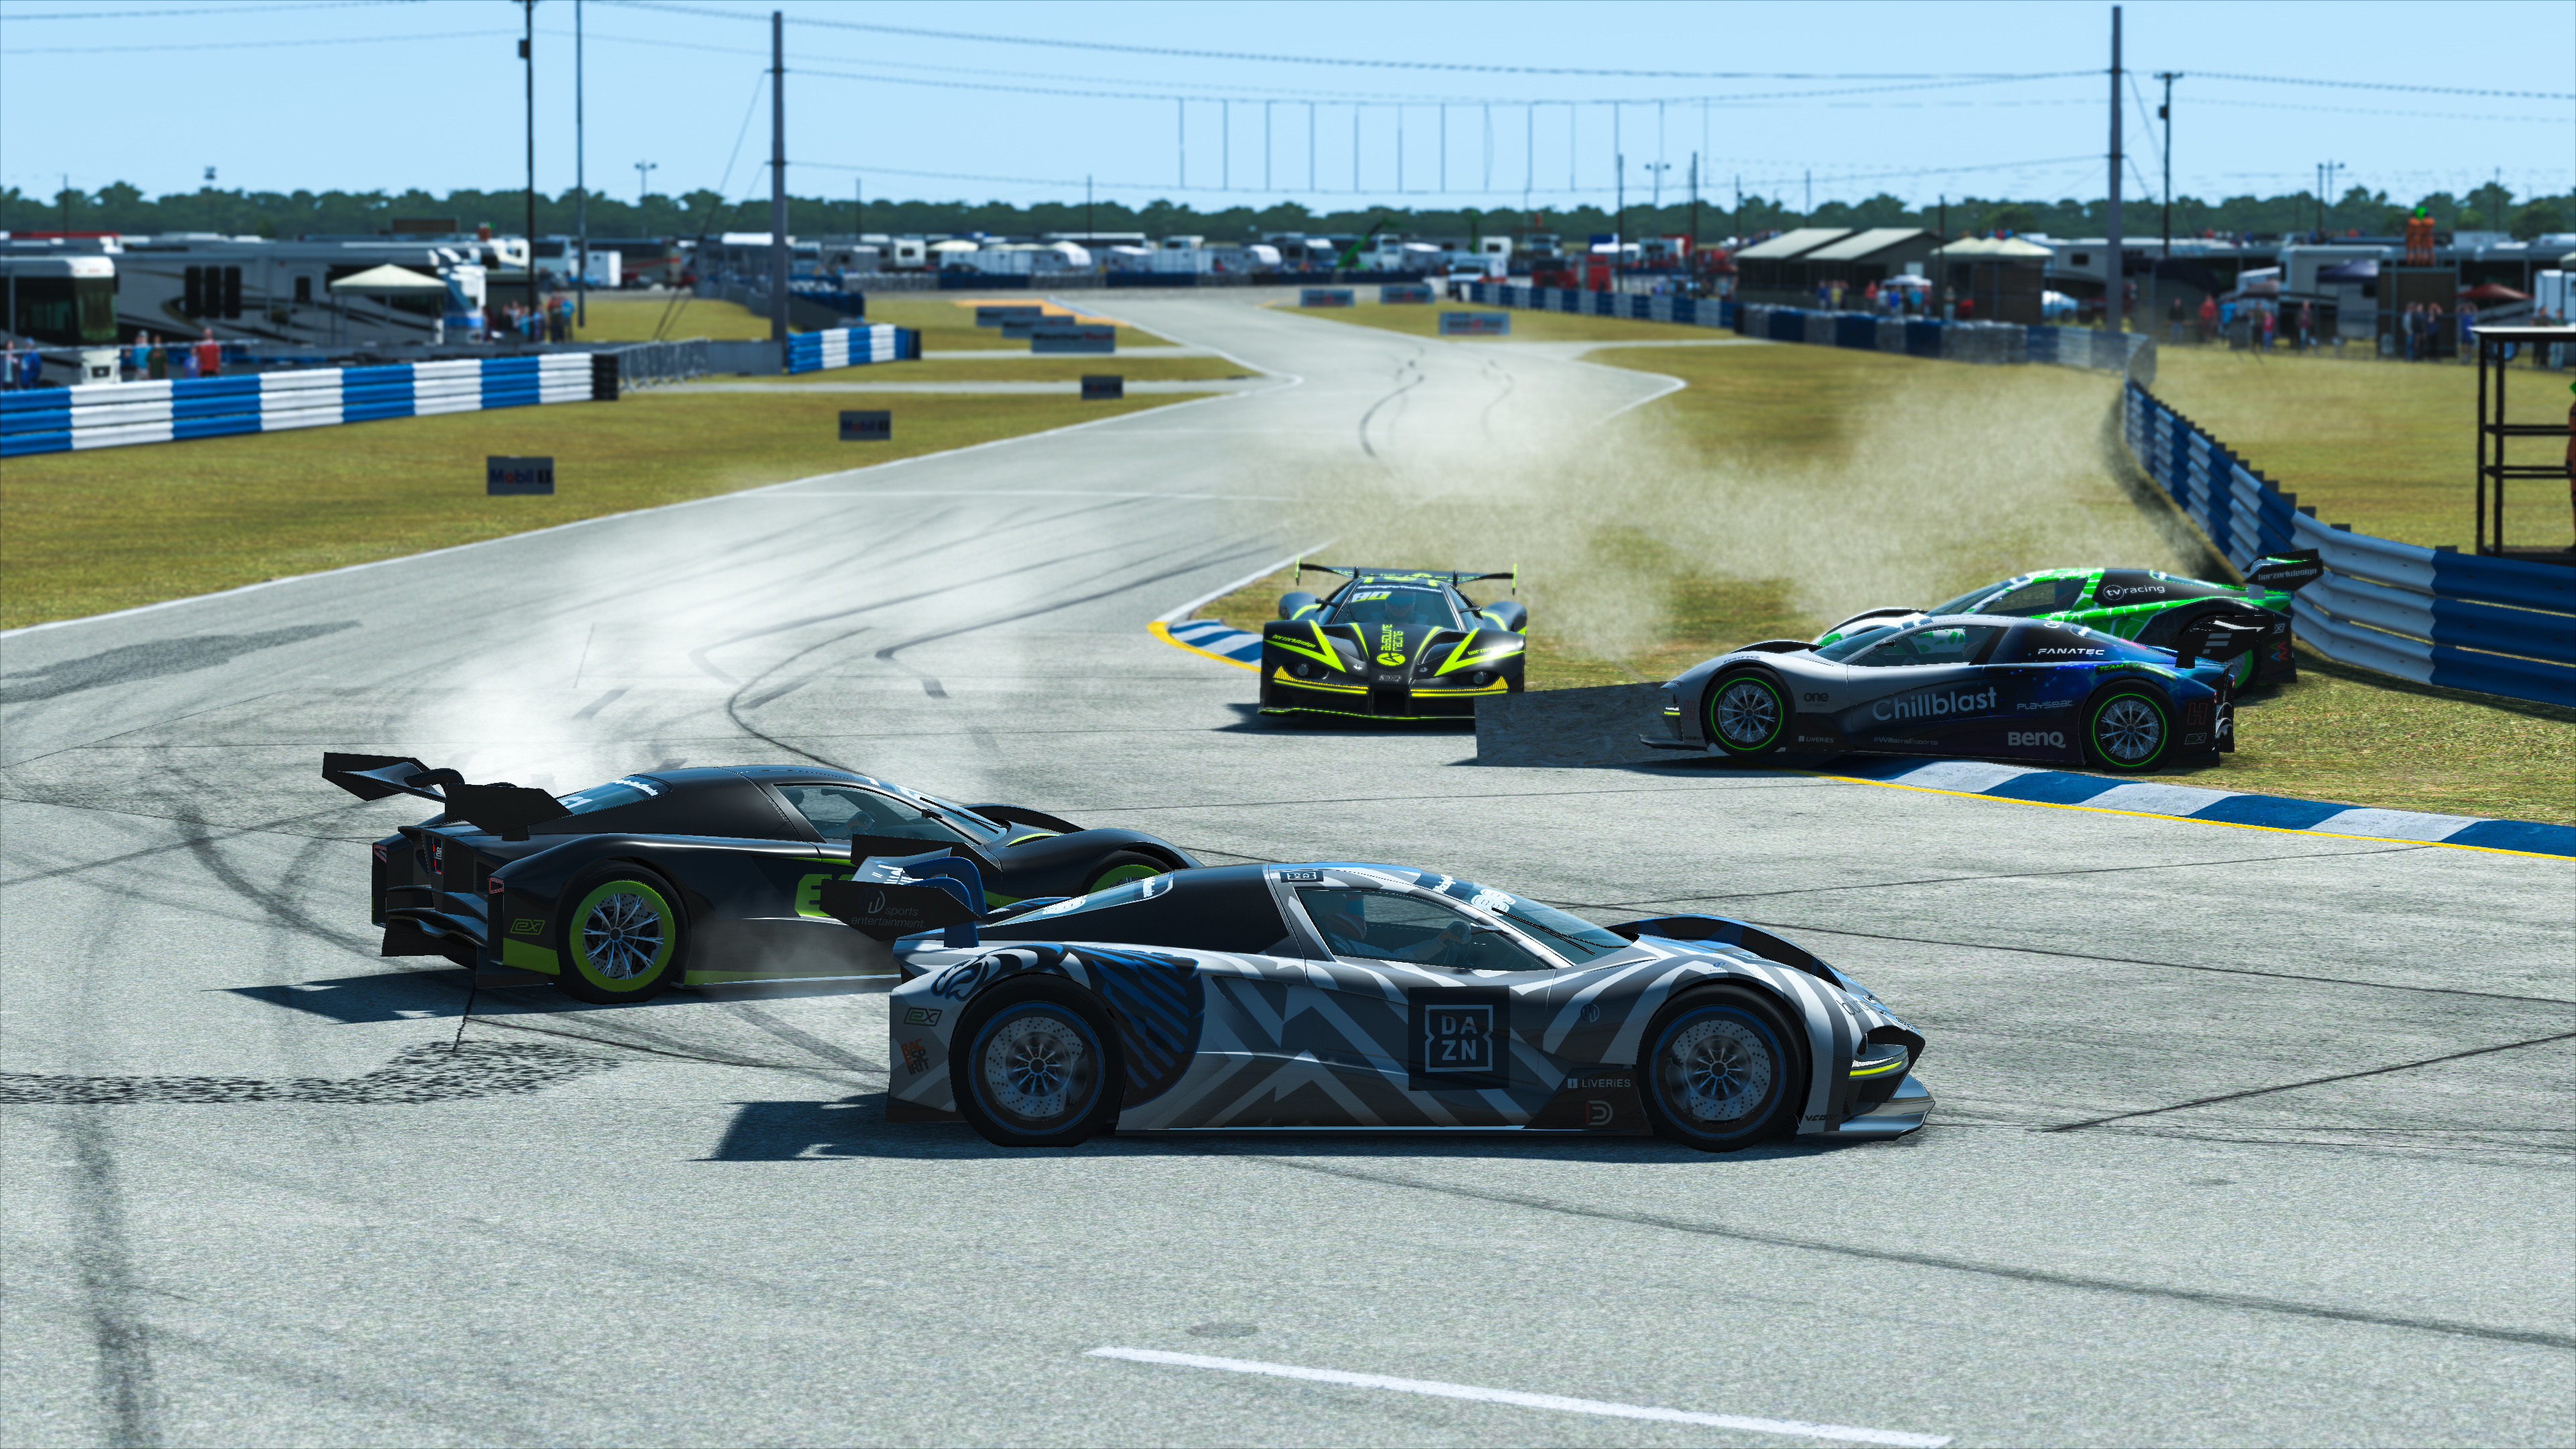 A load of virtual racing cars colliding with each other at high speed.